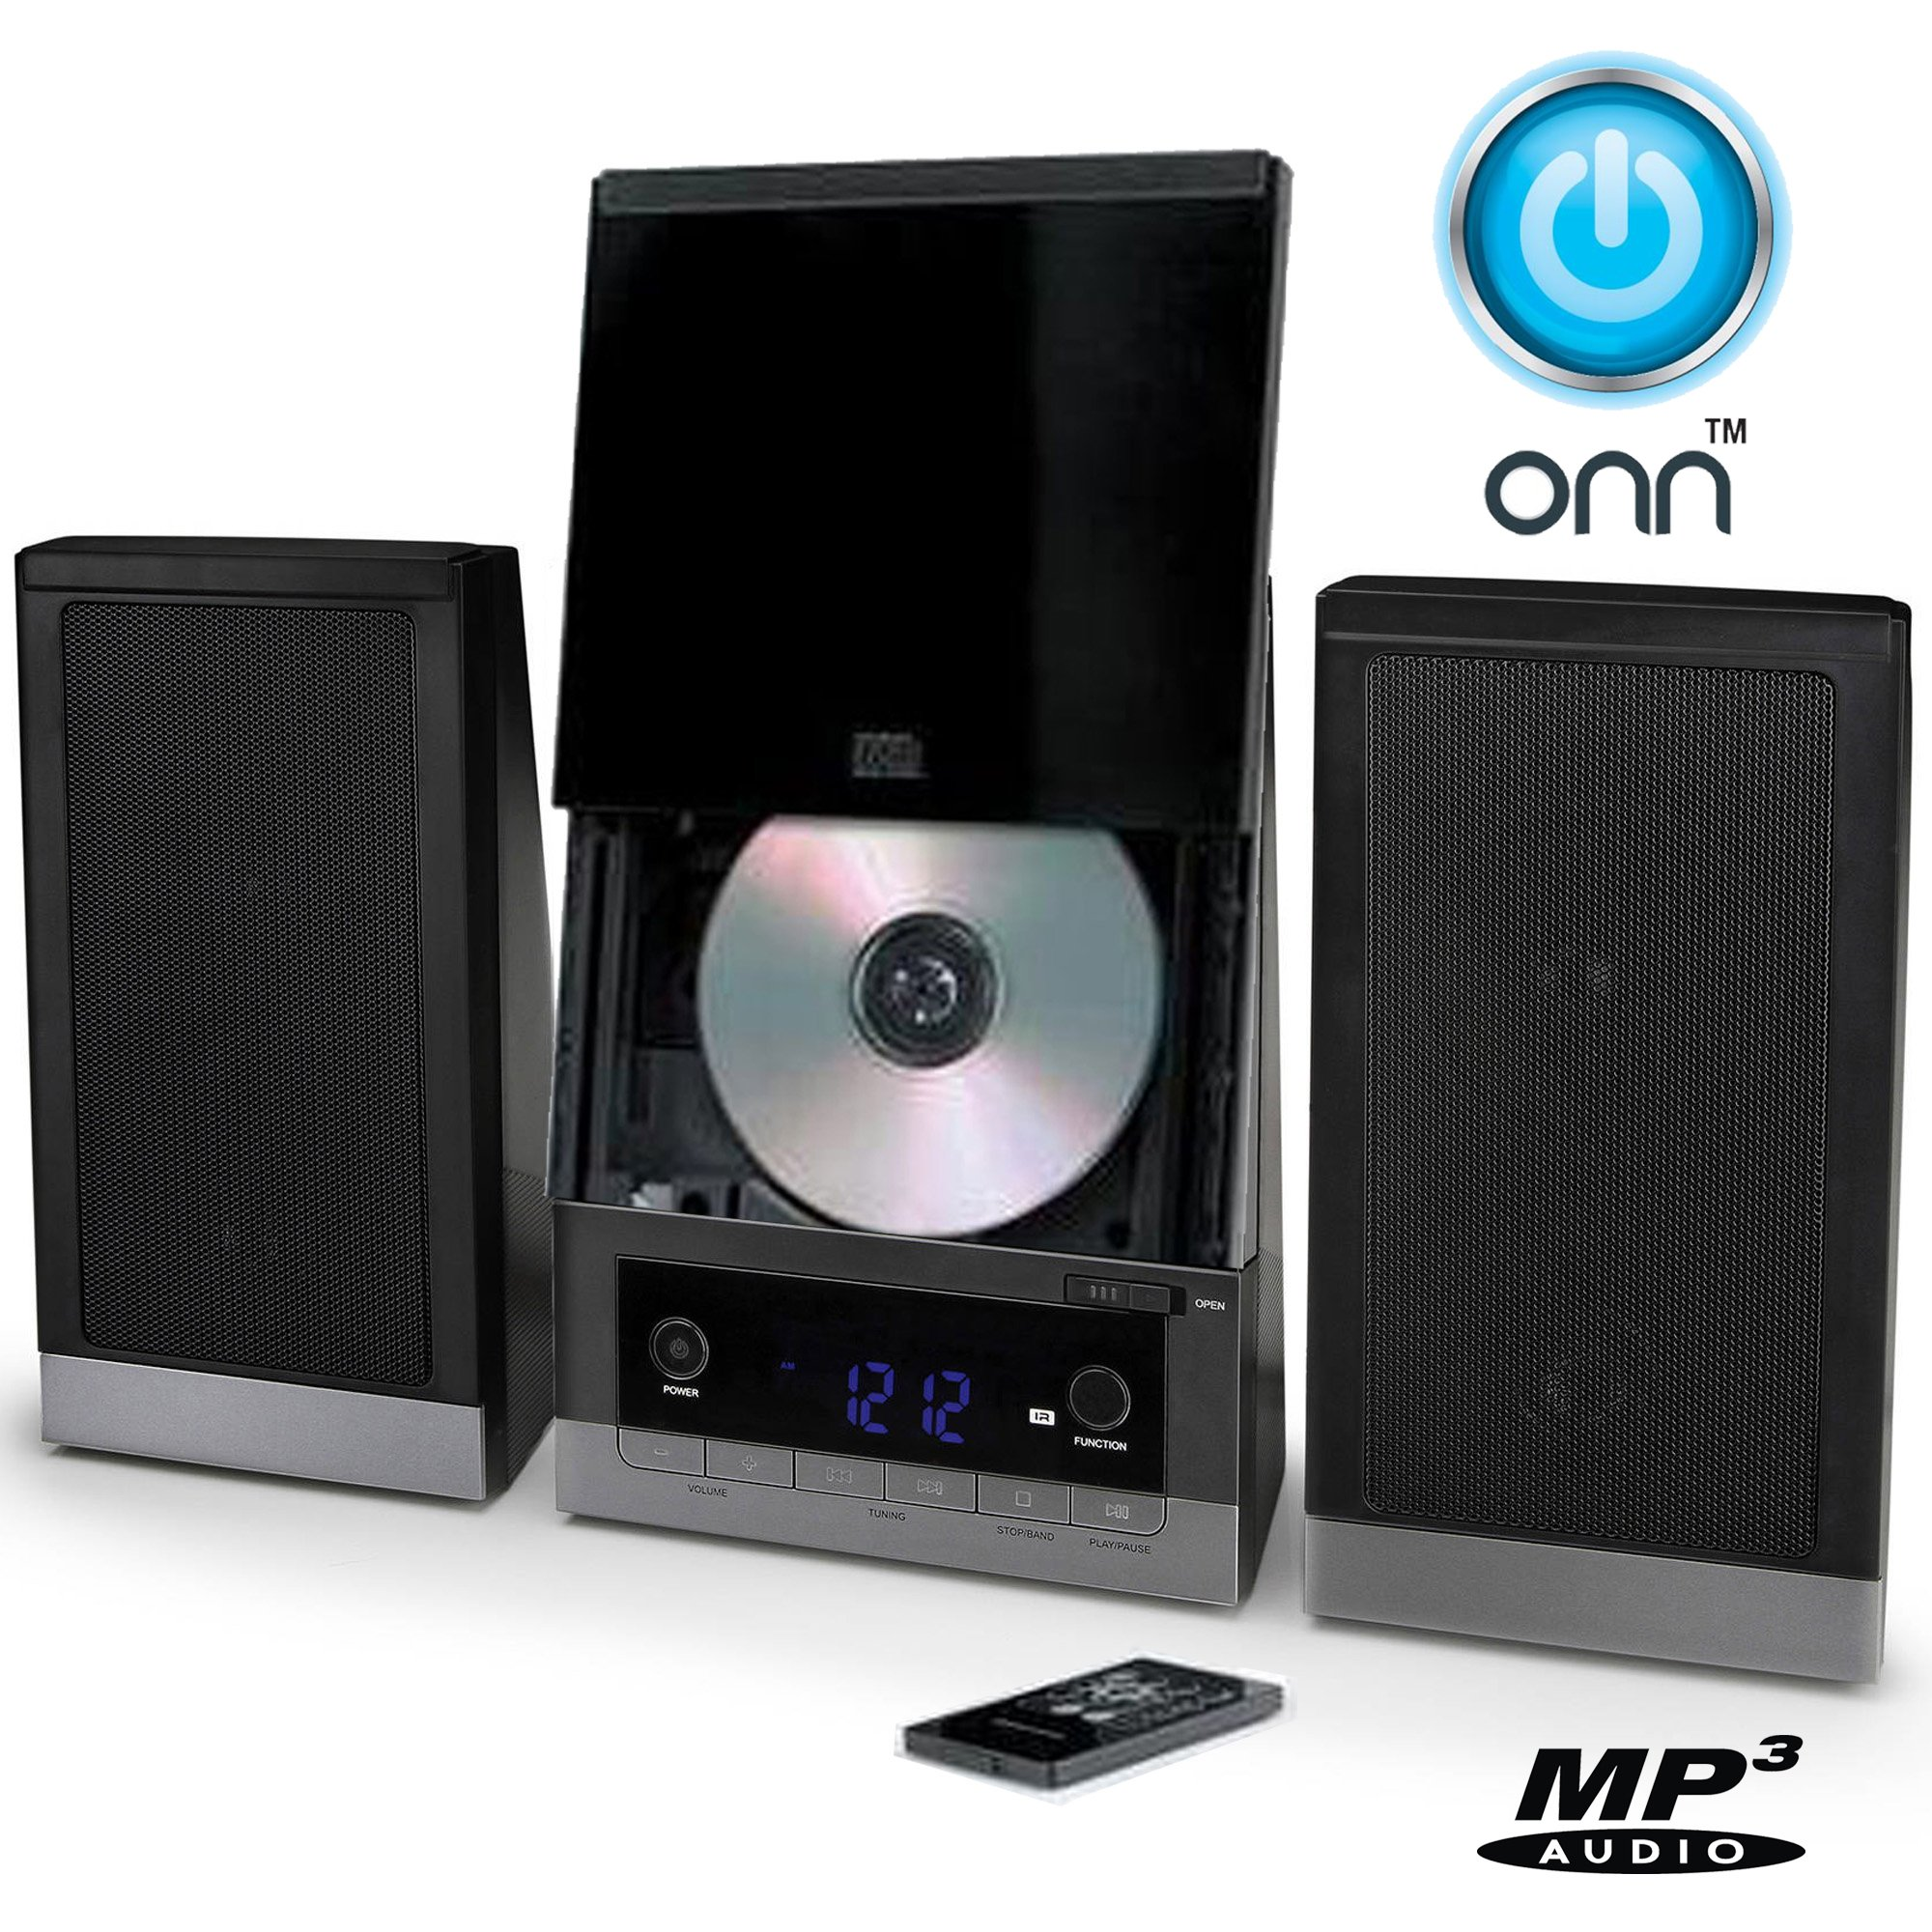 ONN Audio Compact Home CD Music Shelf System Vertical-loading with Stereo Dynamic Speakers & Digital AM/FM Radio LCD Display & Aux Line in ONB-203 (Refurbished)